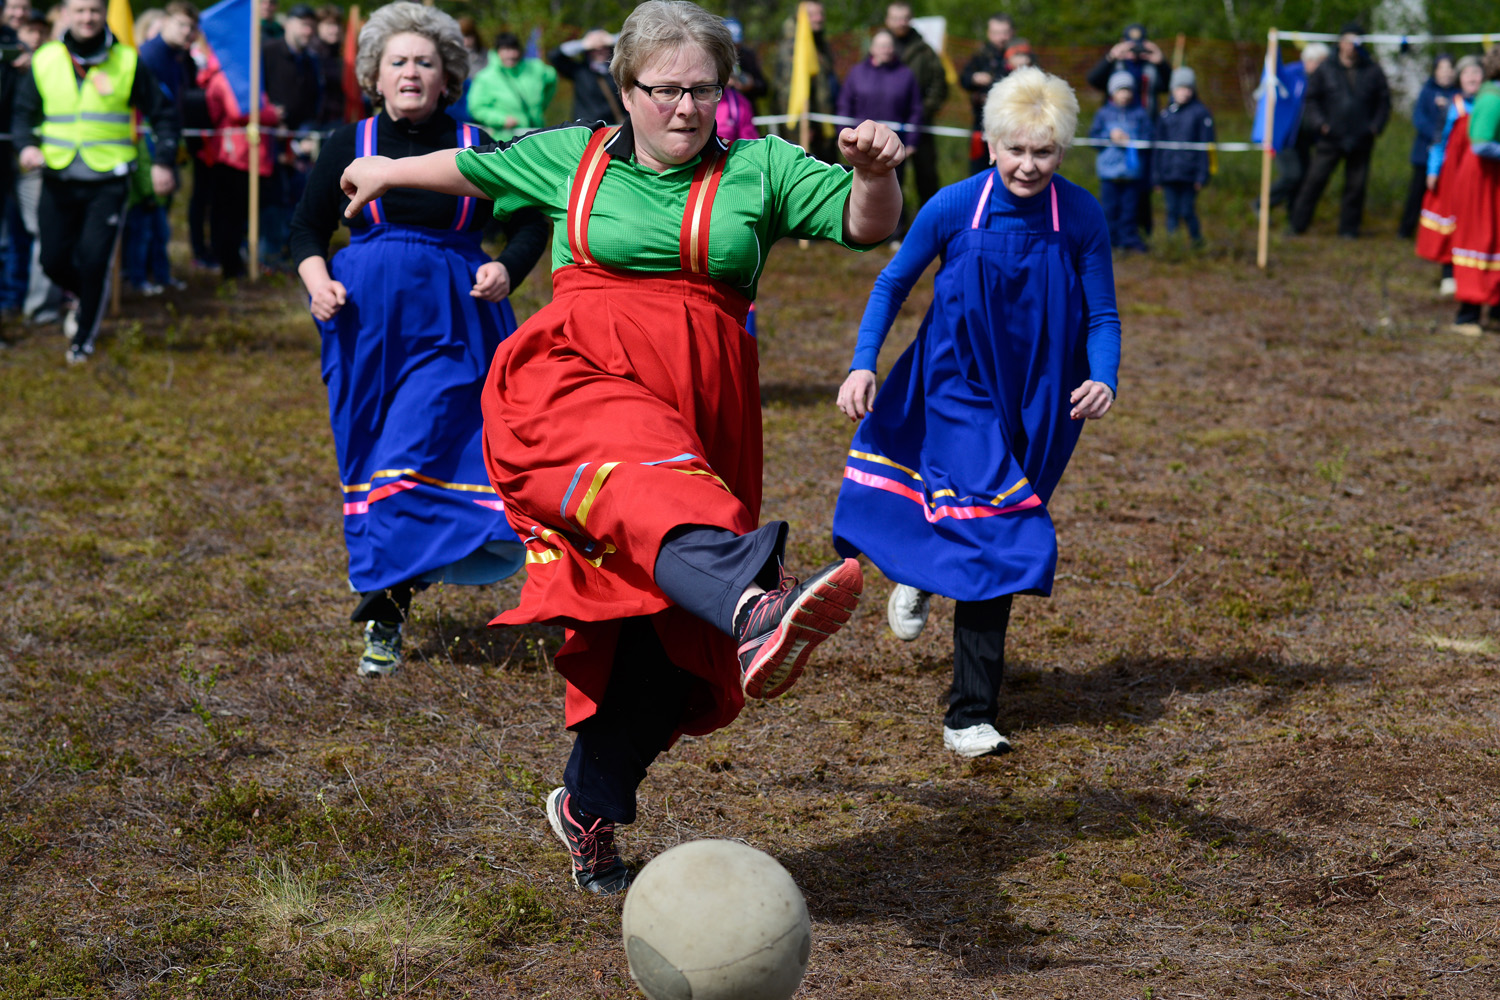 The contests include jumping through wooden sledges, crossbow shooting, lassoing ferrets, running with a stick on uneven terrain, rowing, and Saami football.